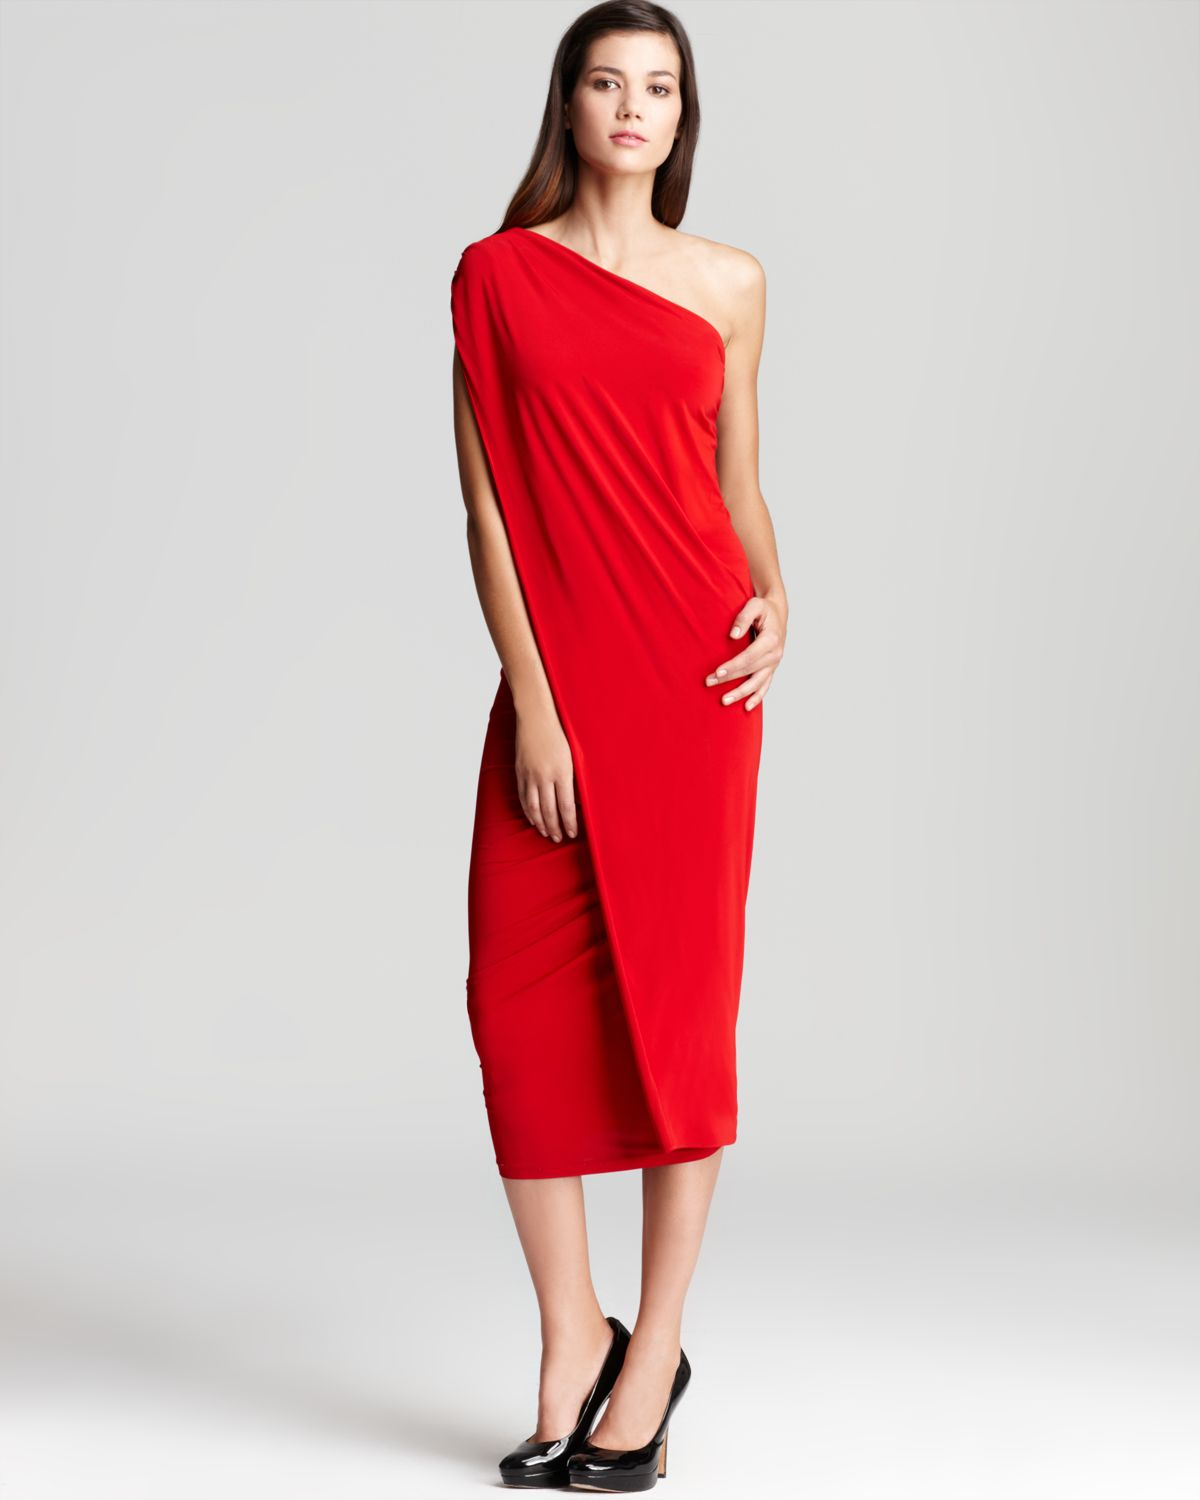 Donna karan One Shoulder Cocktail Dress in Red | Lyst